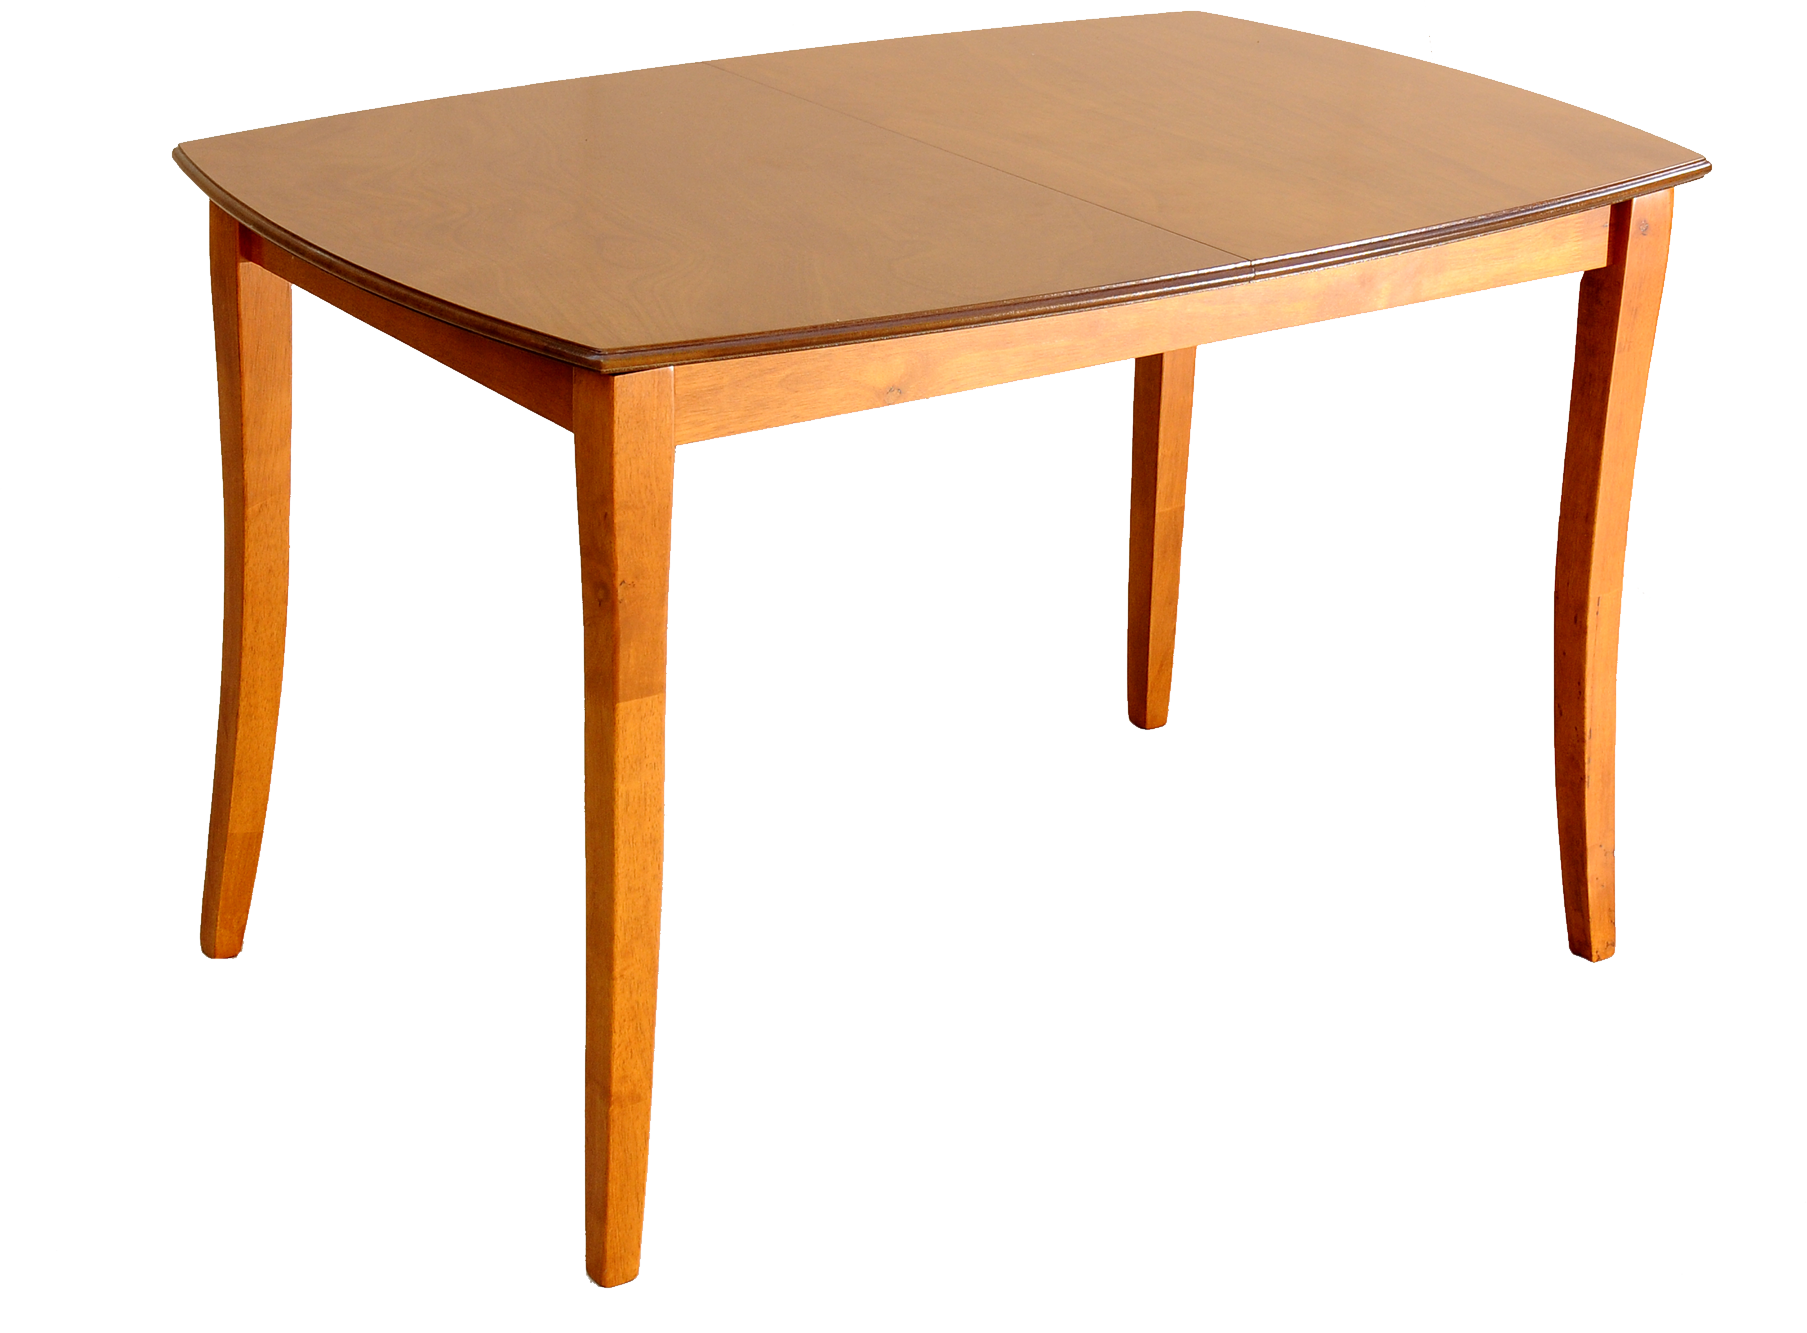 Superbe Table PNG Image   PurePNG | Free Transparent CC0 PNG Image Library